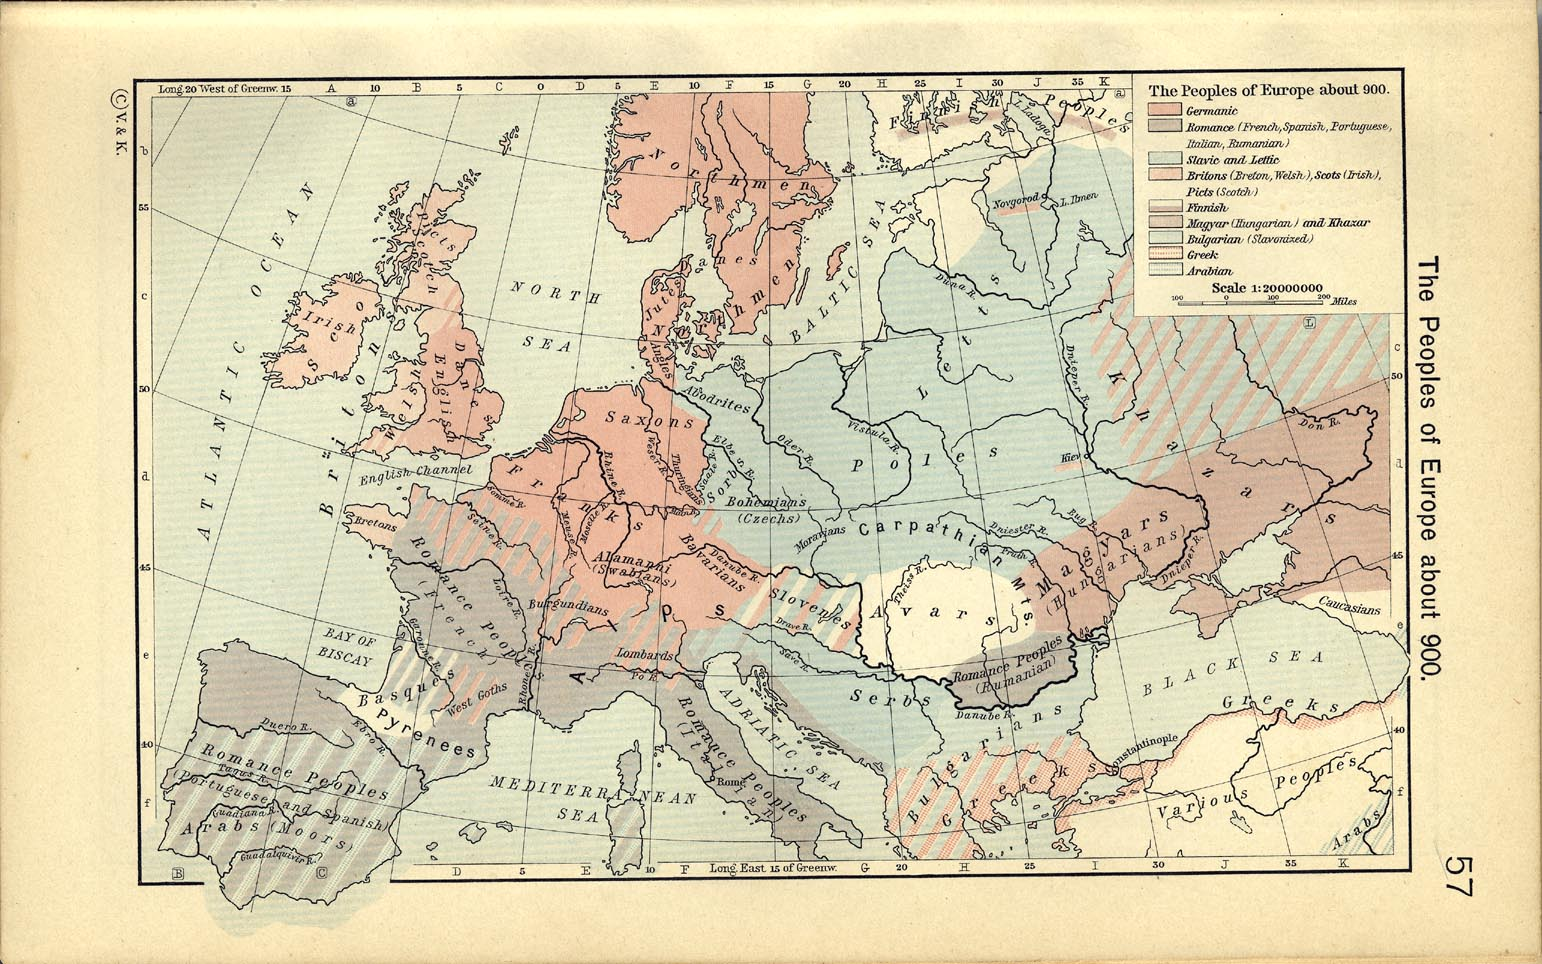 The Peoples of Europe circa 900